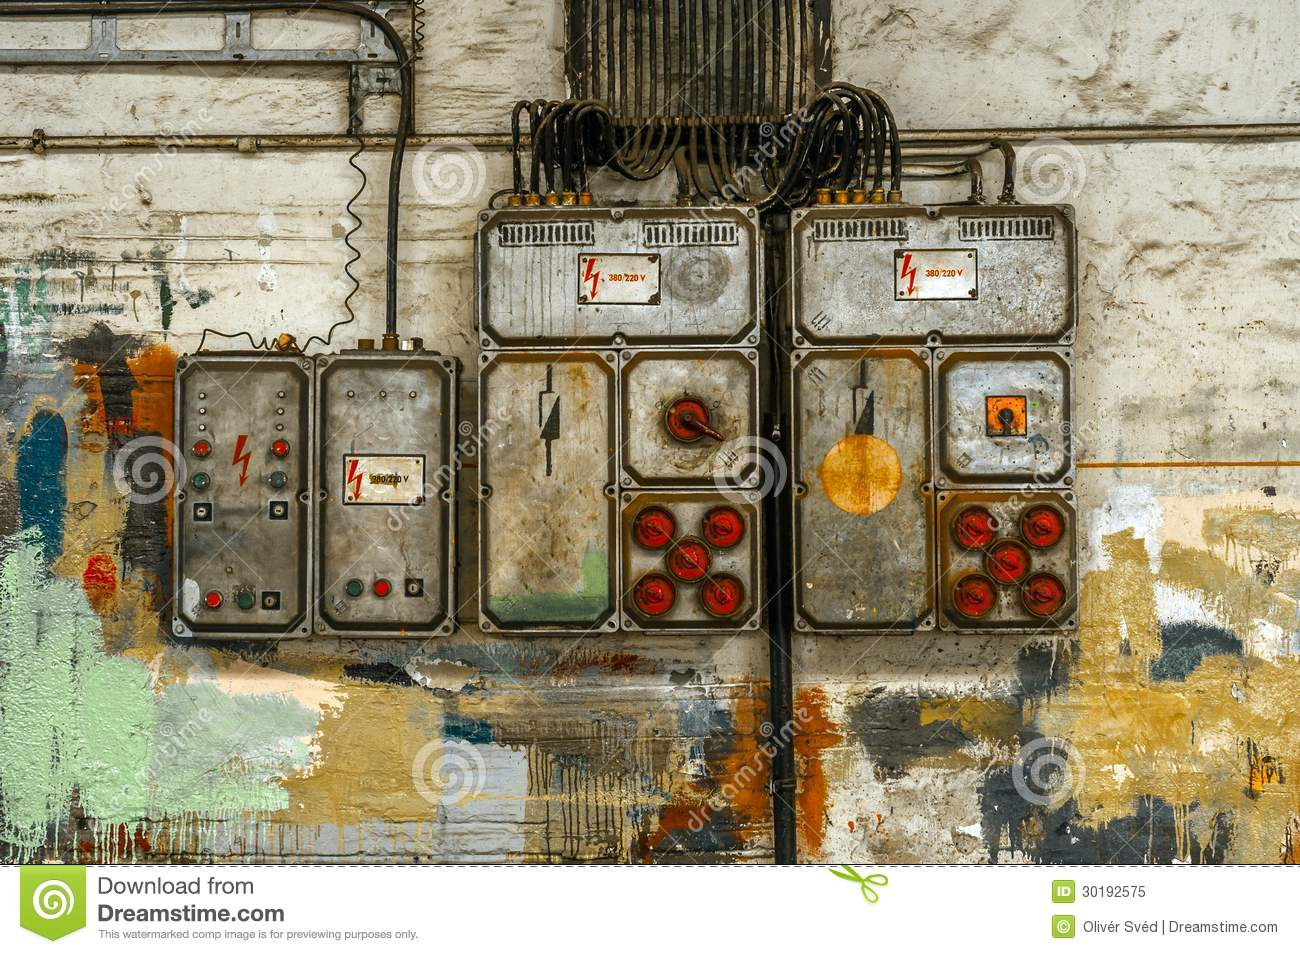 hight resolution of industrial fuse box on the wall stock image image of engineering home fuse box fuse box wall